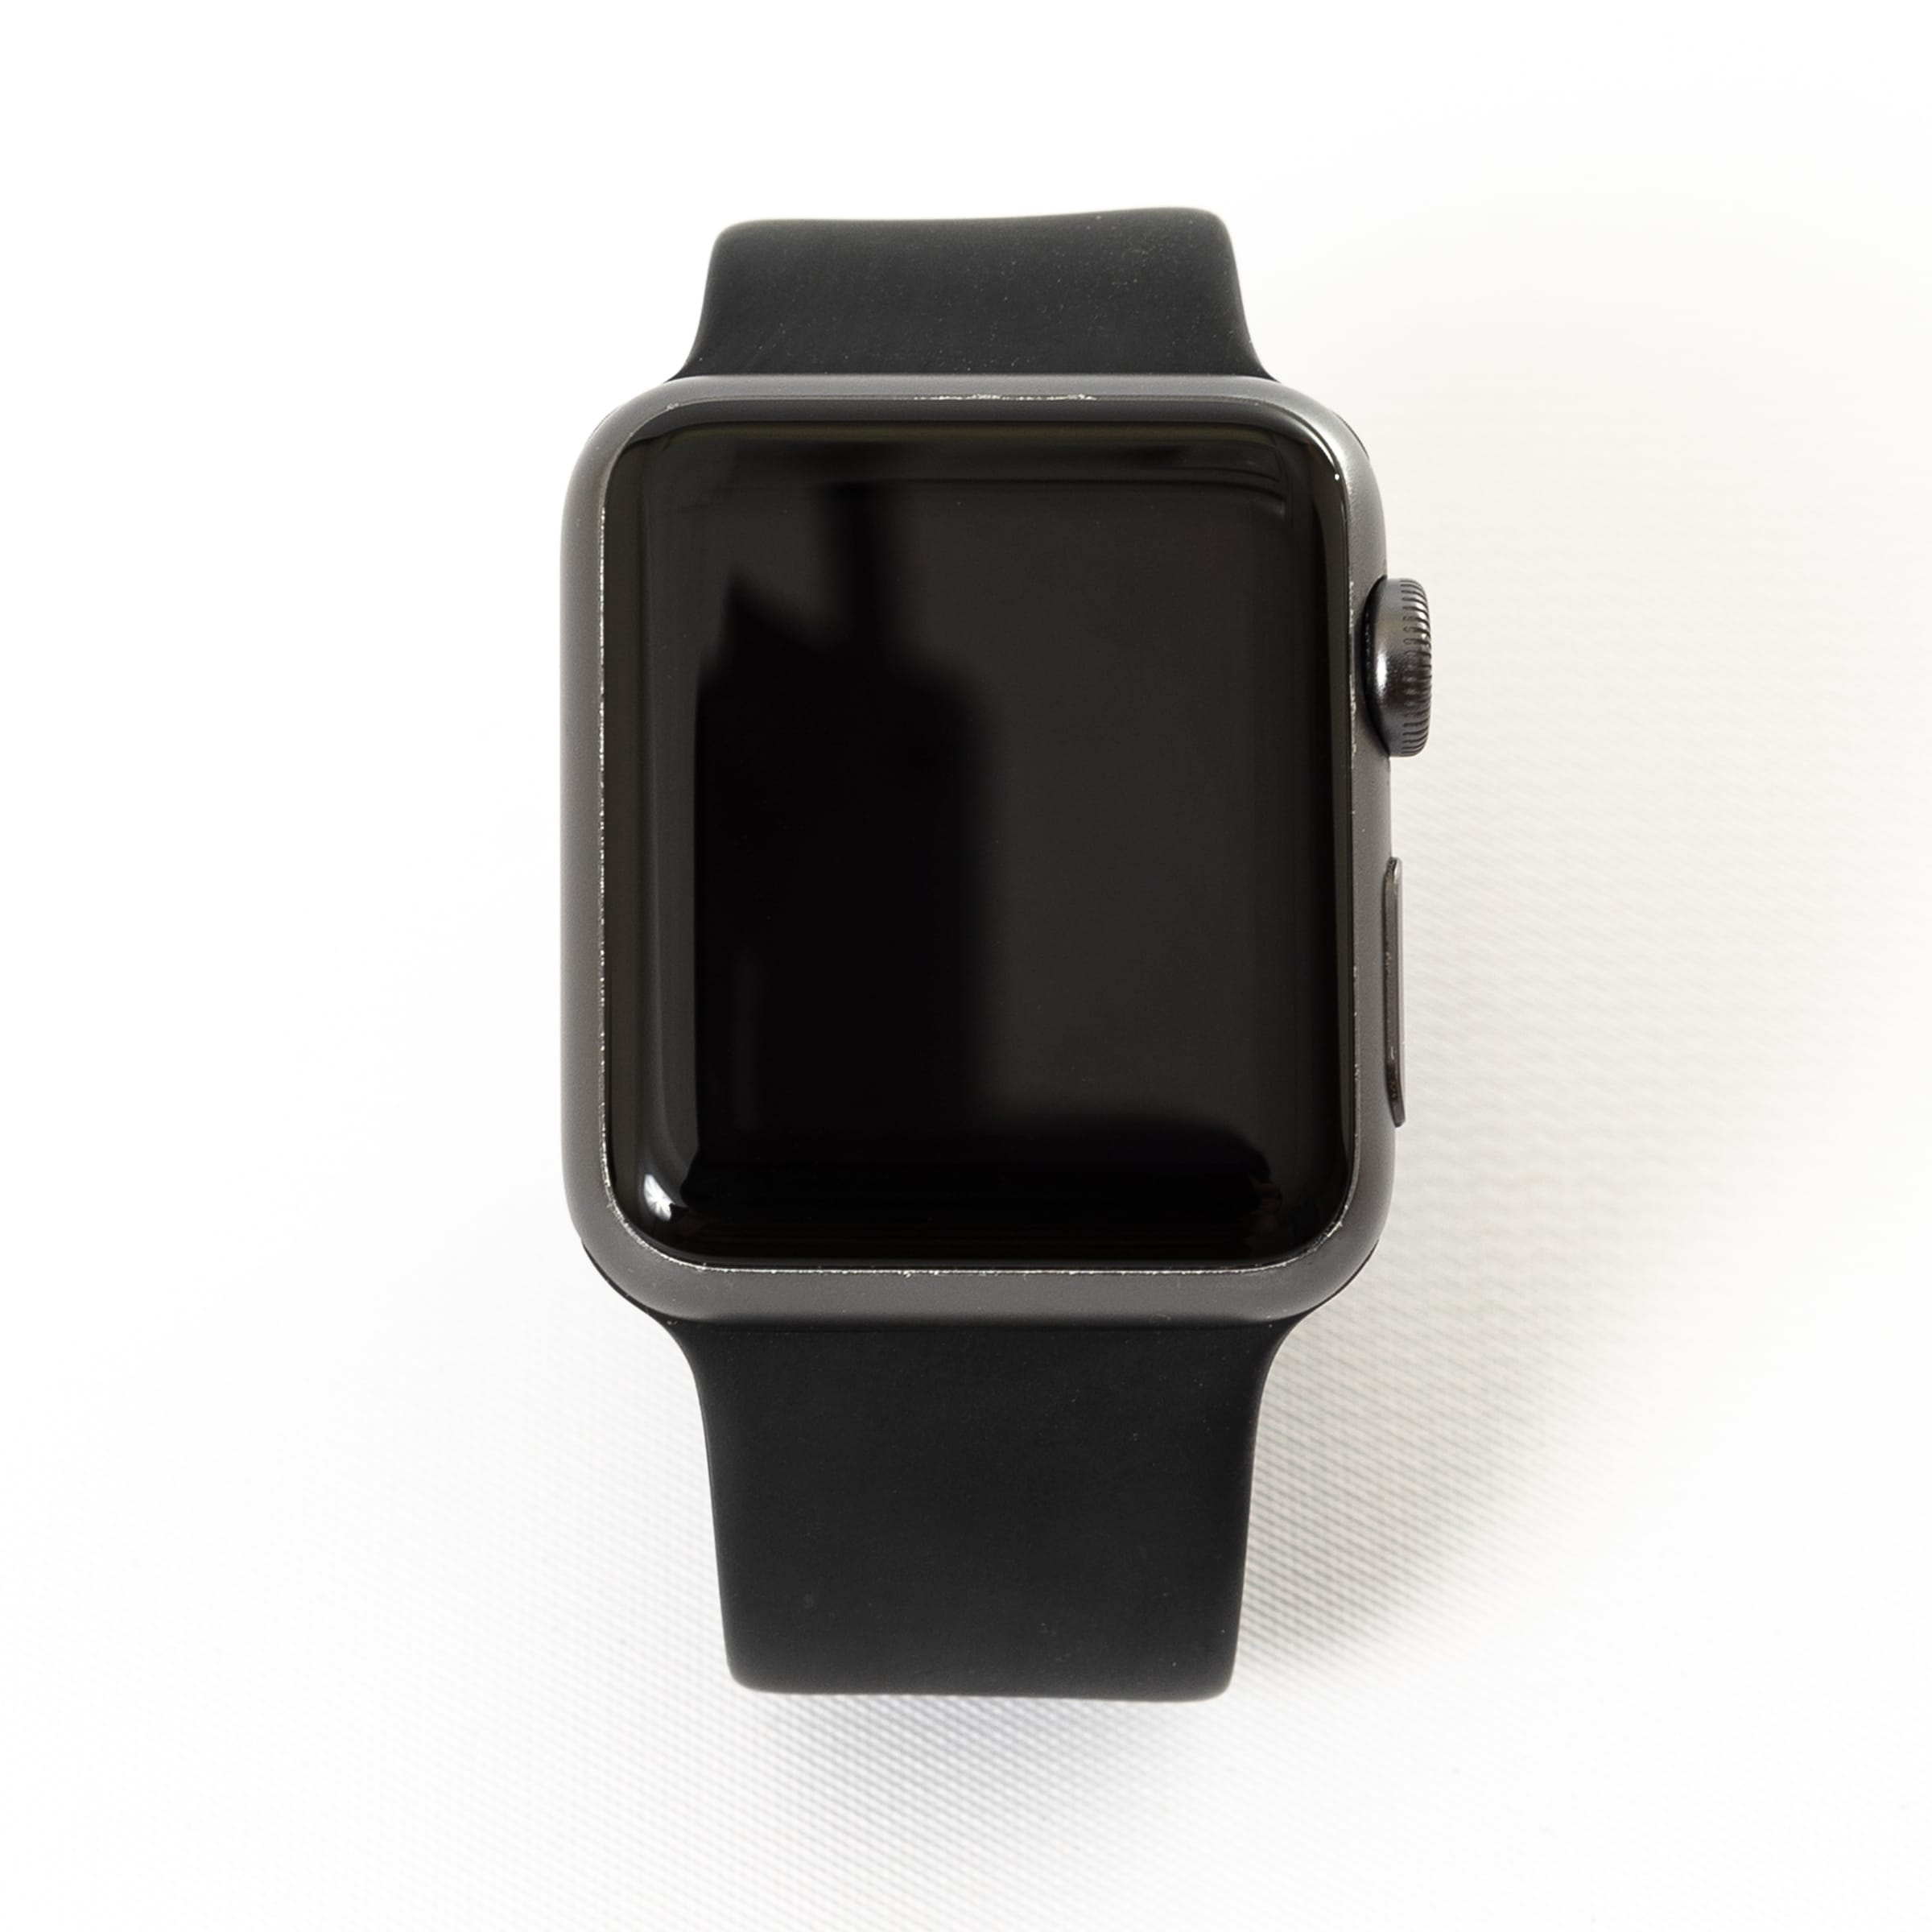 b93784ba0741b Apple Watch MP032LL/A Series 1 42MM Space Gray Aluminum Case/Black Sport  Band - Refurbished by Overstock